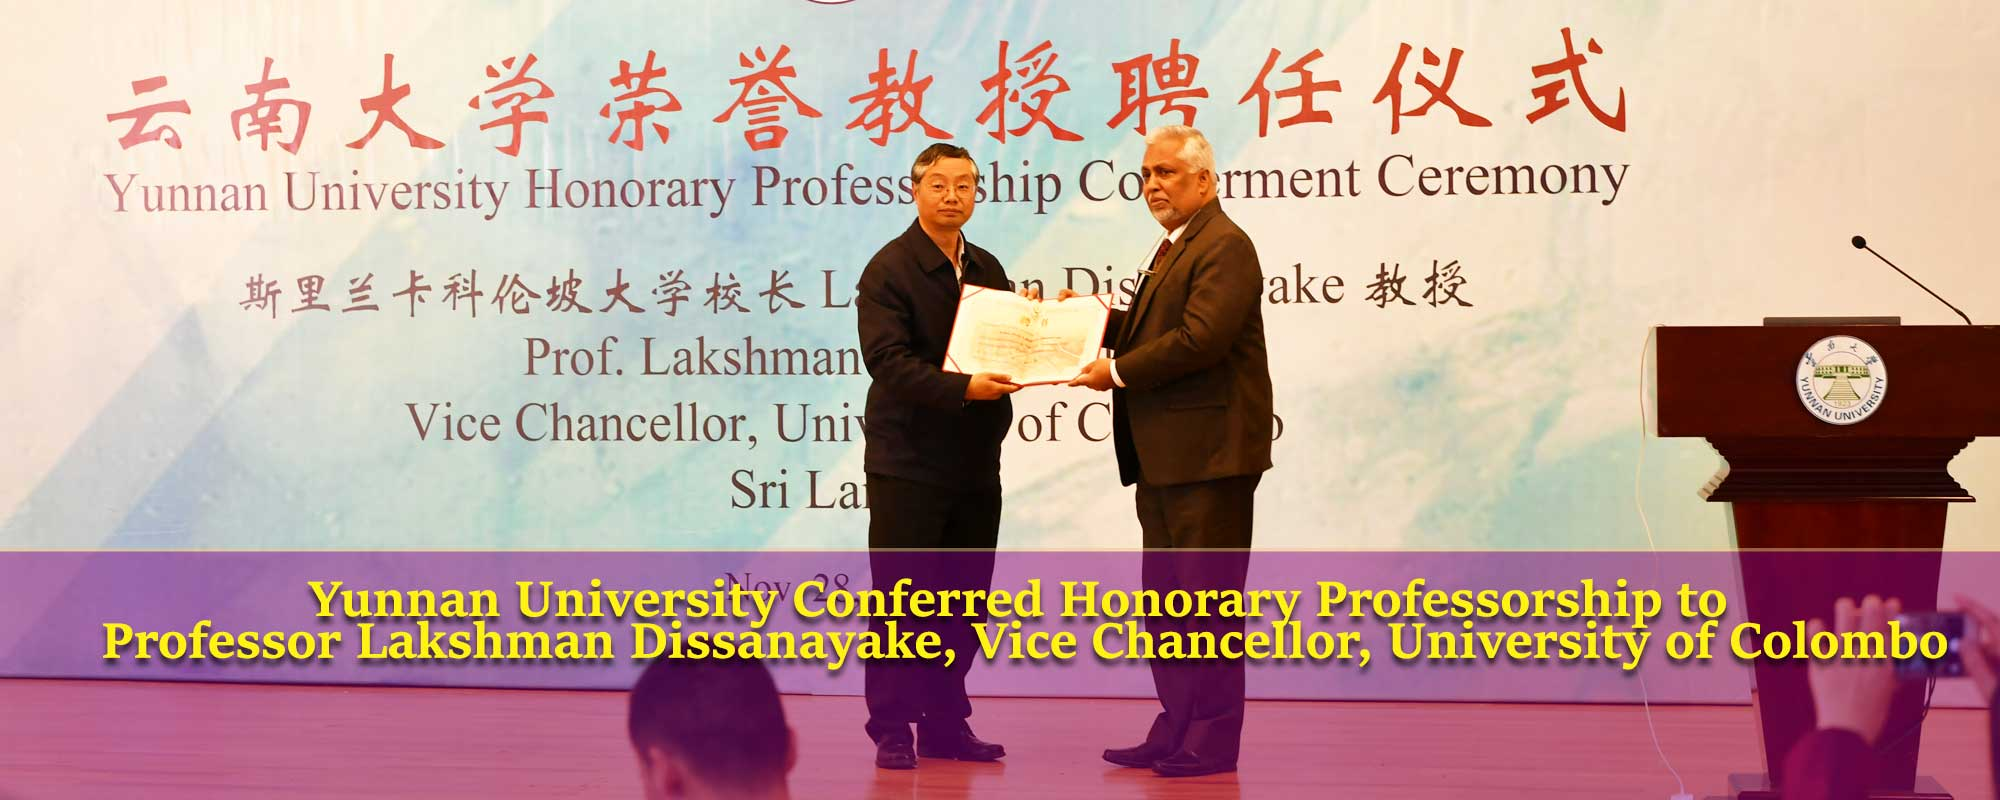 Yunnan University Conferred Honorary Professorship to Professor Lakshman Dissanayake, Vice Chancellor, University of Colombo